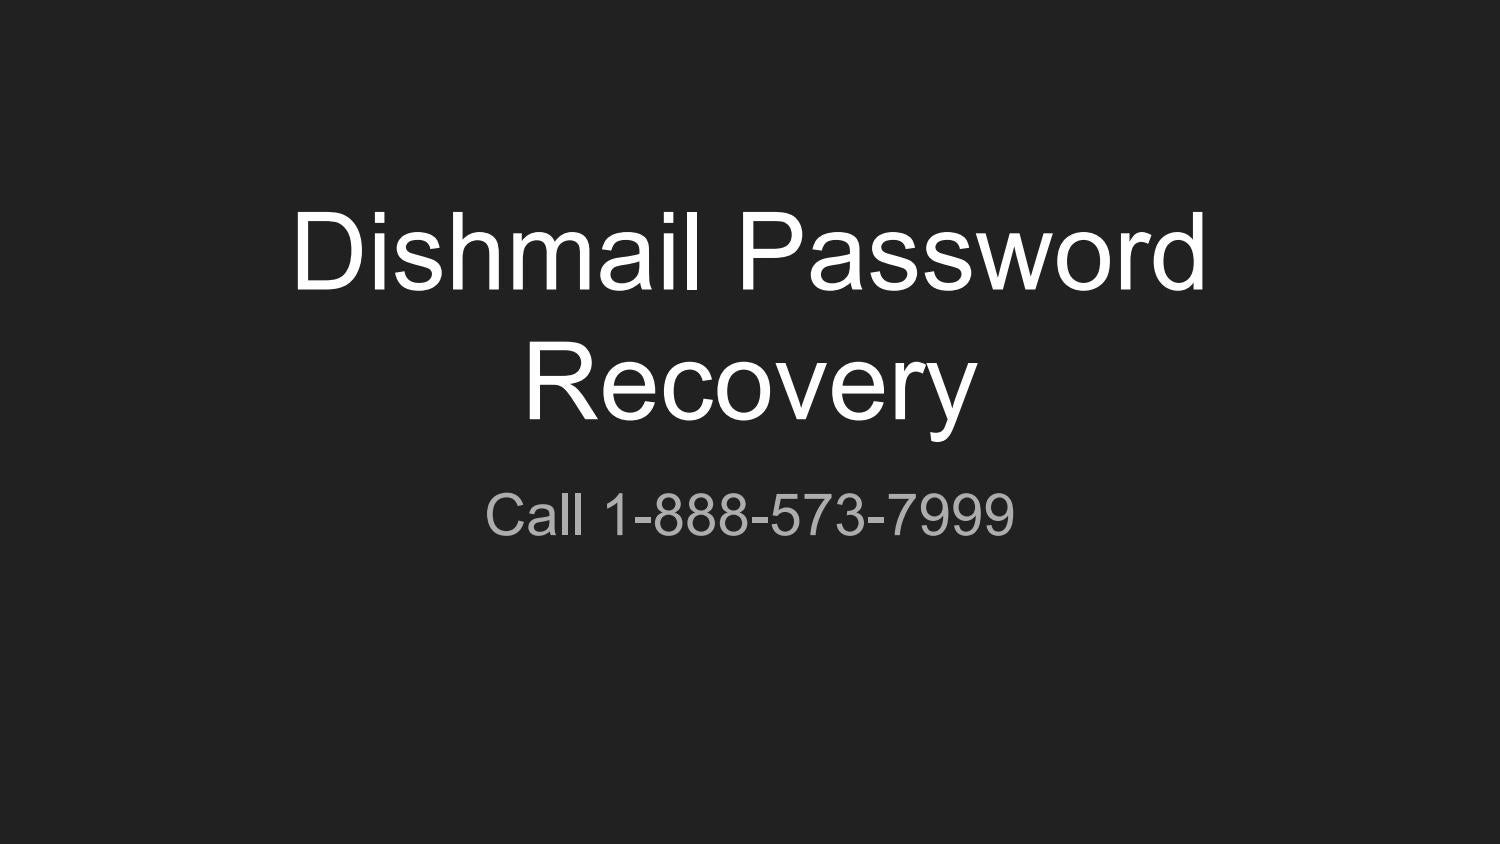 Dishmail login page